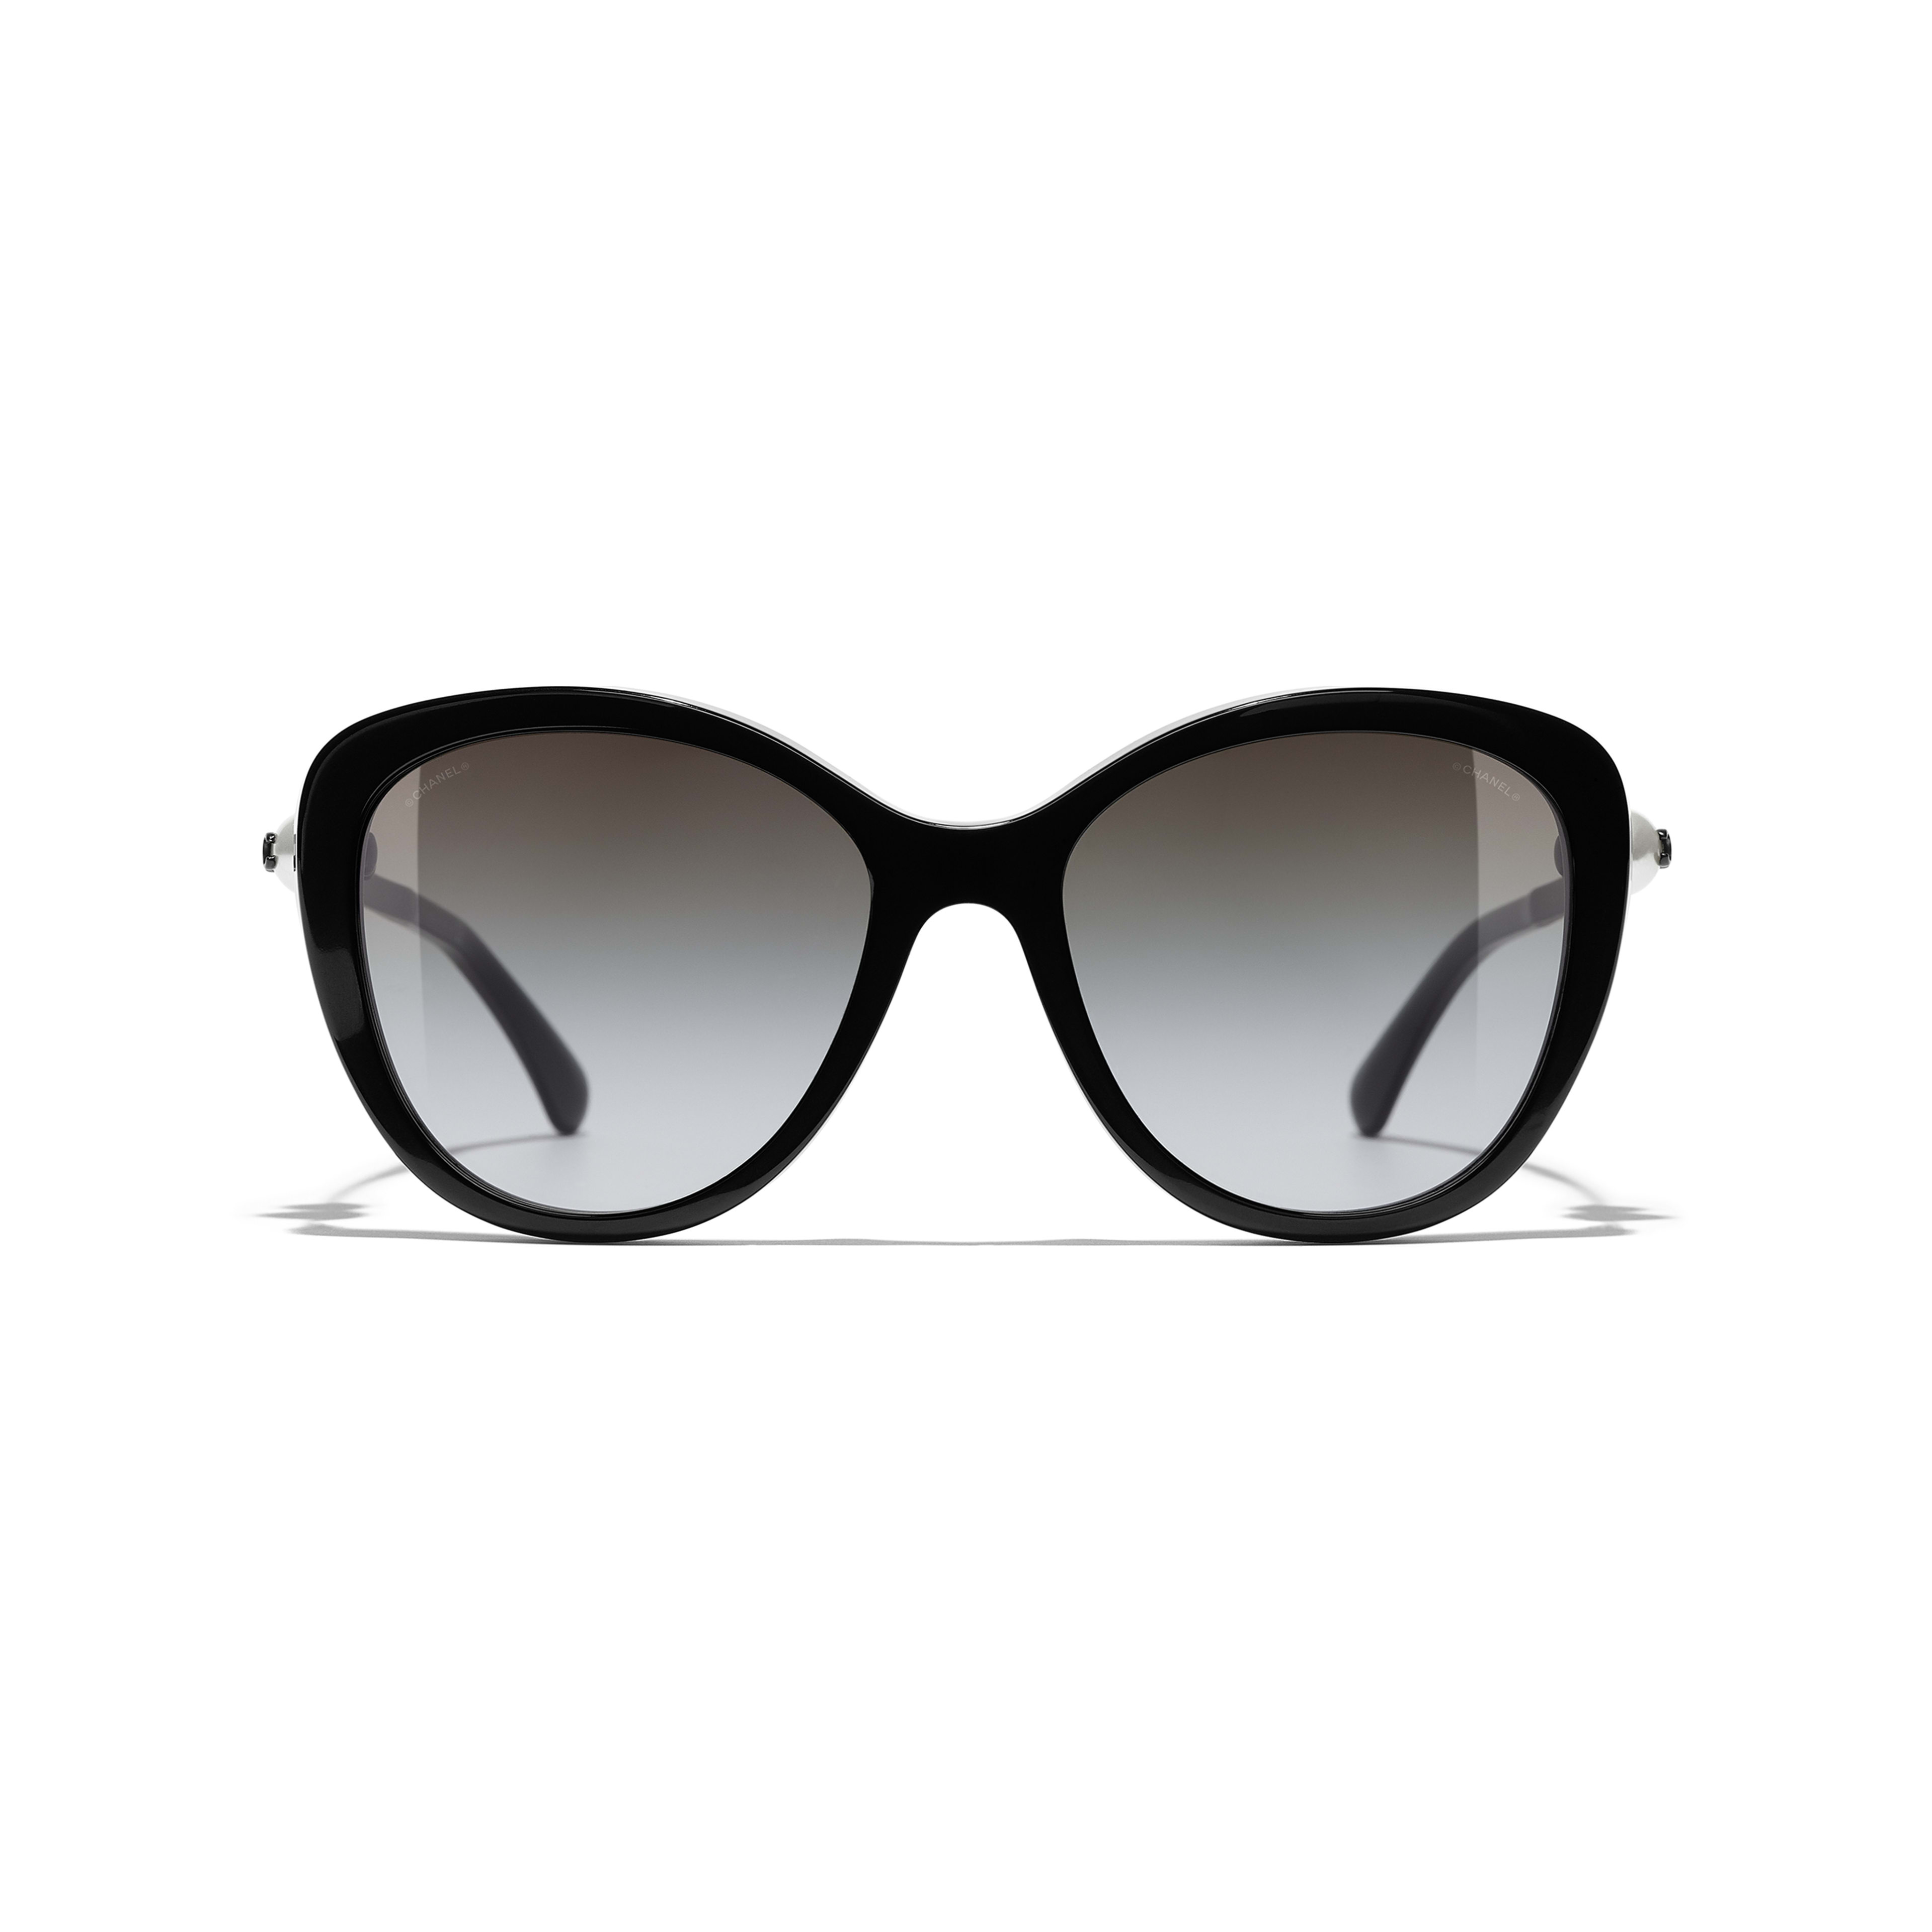 Butterfly Sunglasses - Black - Acetate & Imitation Pearls - CHANEL - Alternative view - see standard sized version